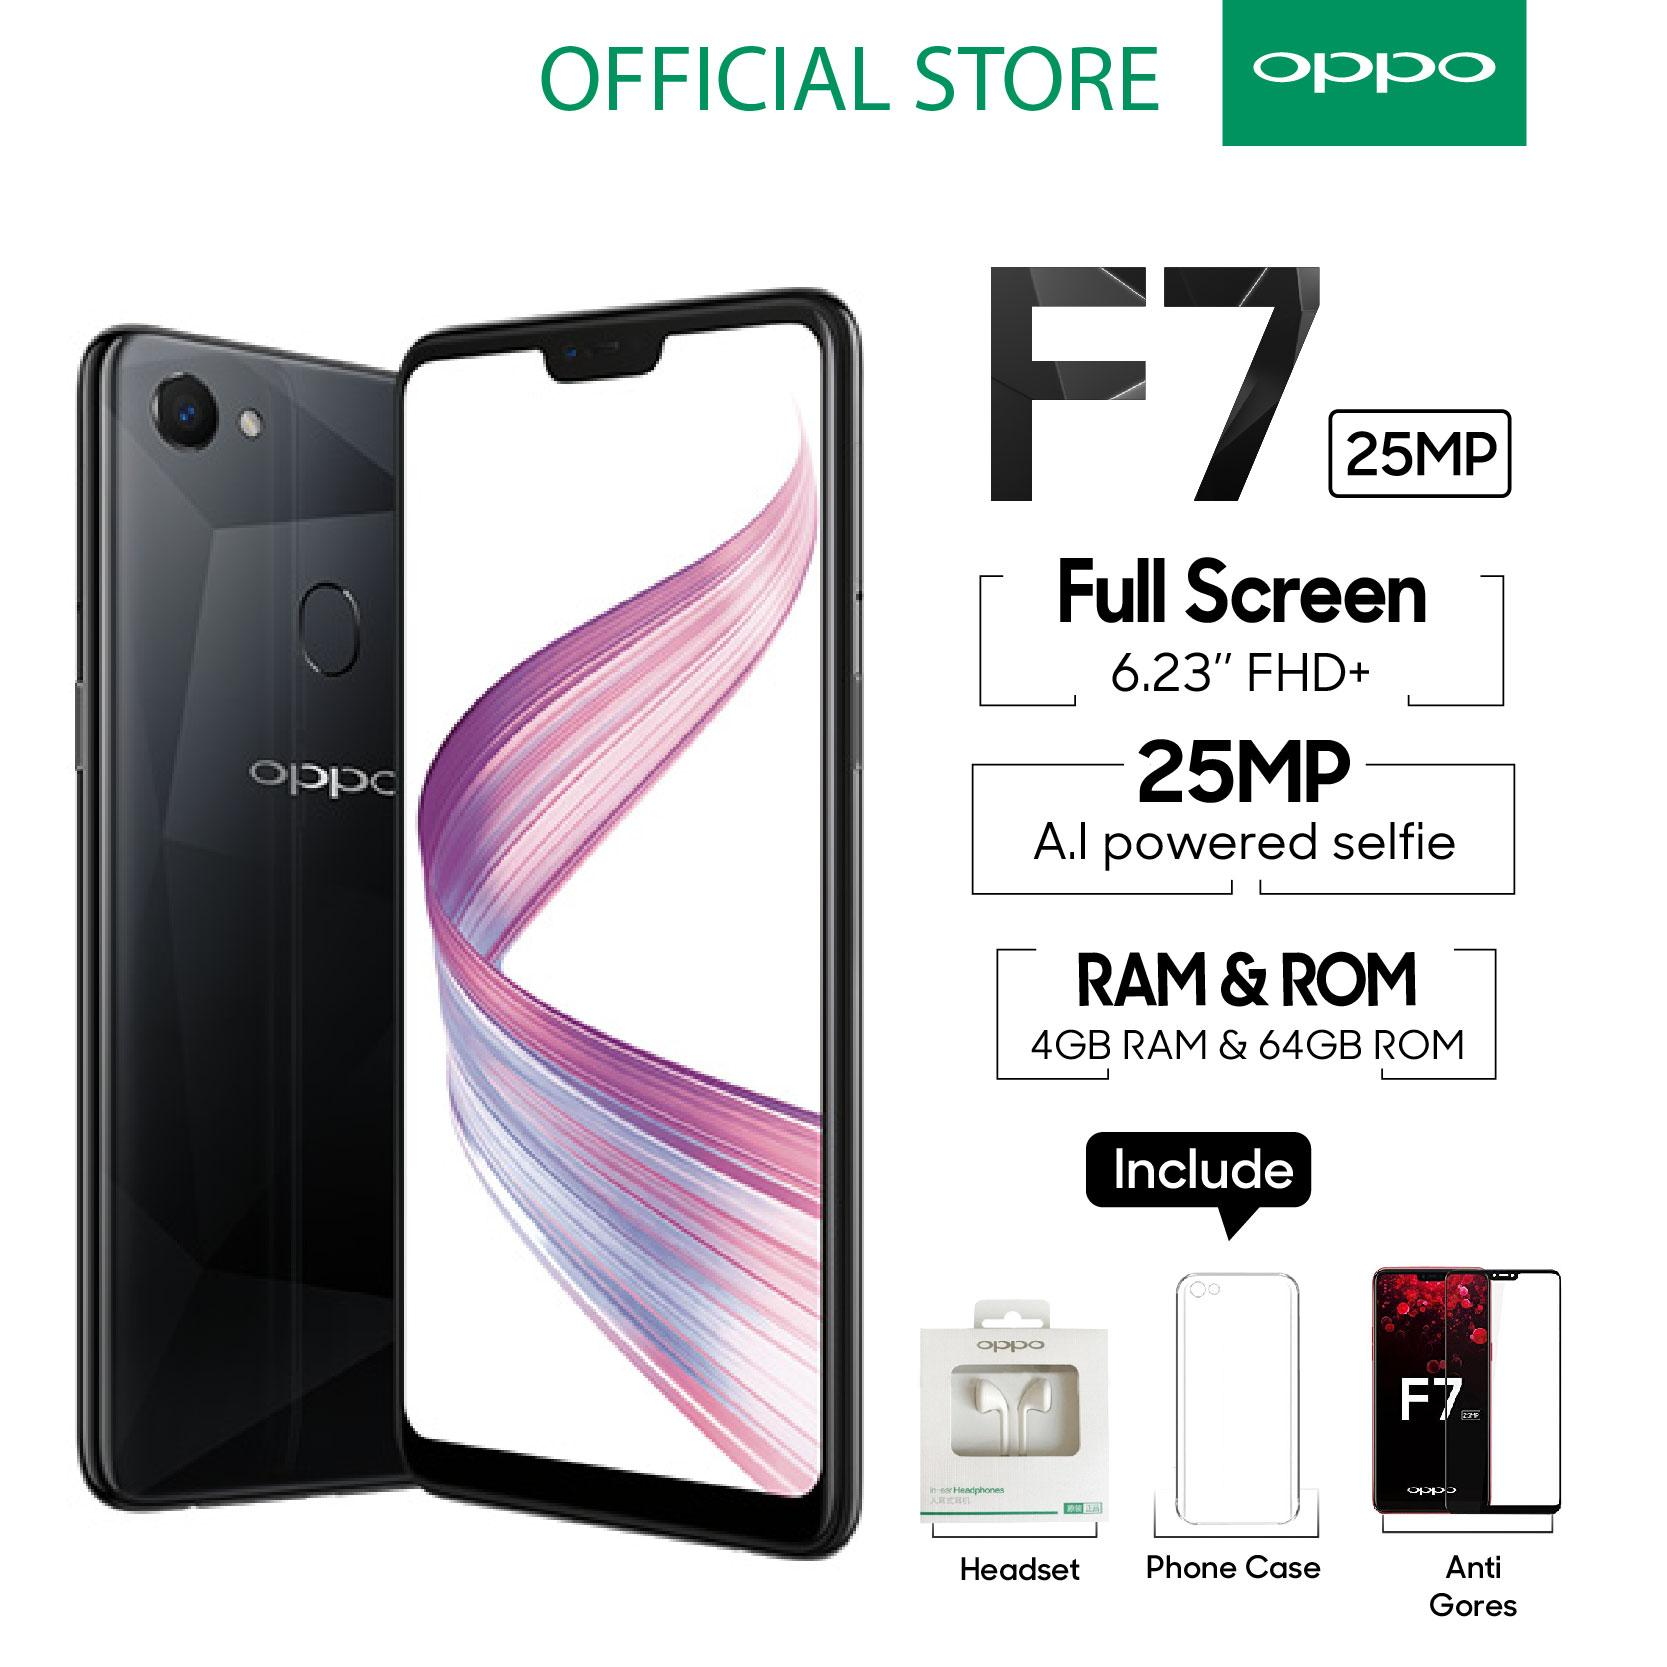 OPPO F7 SMARTPHONE 4GB 64GB Black Al Powered Selfie 25 MP COD